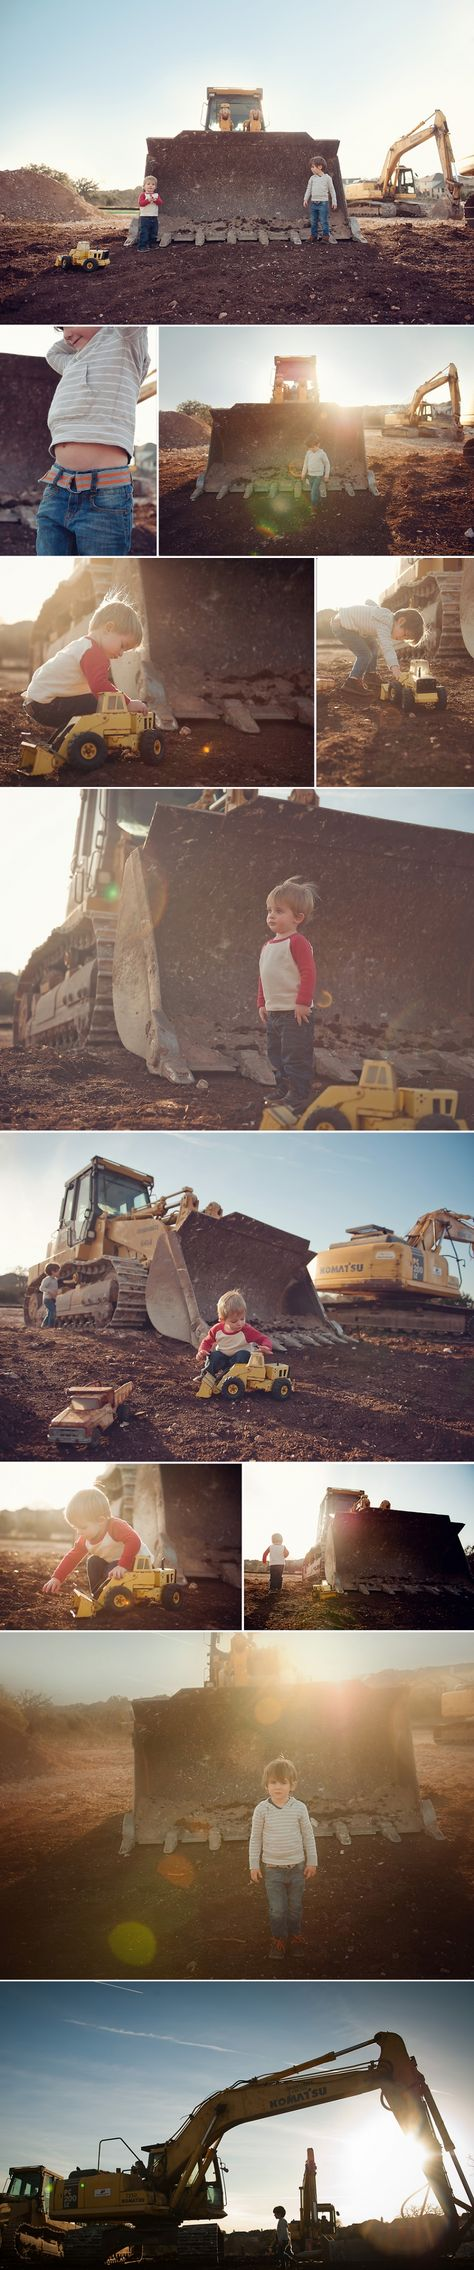 best images about photography children on pinterest